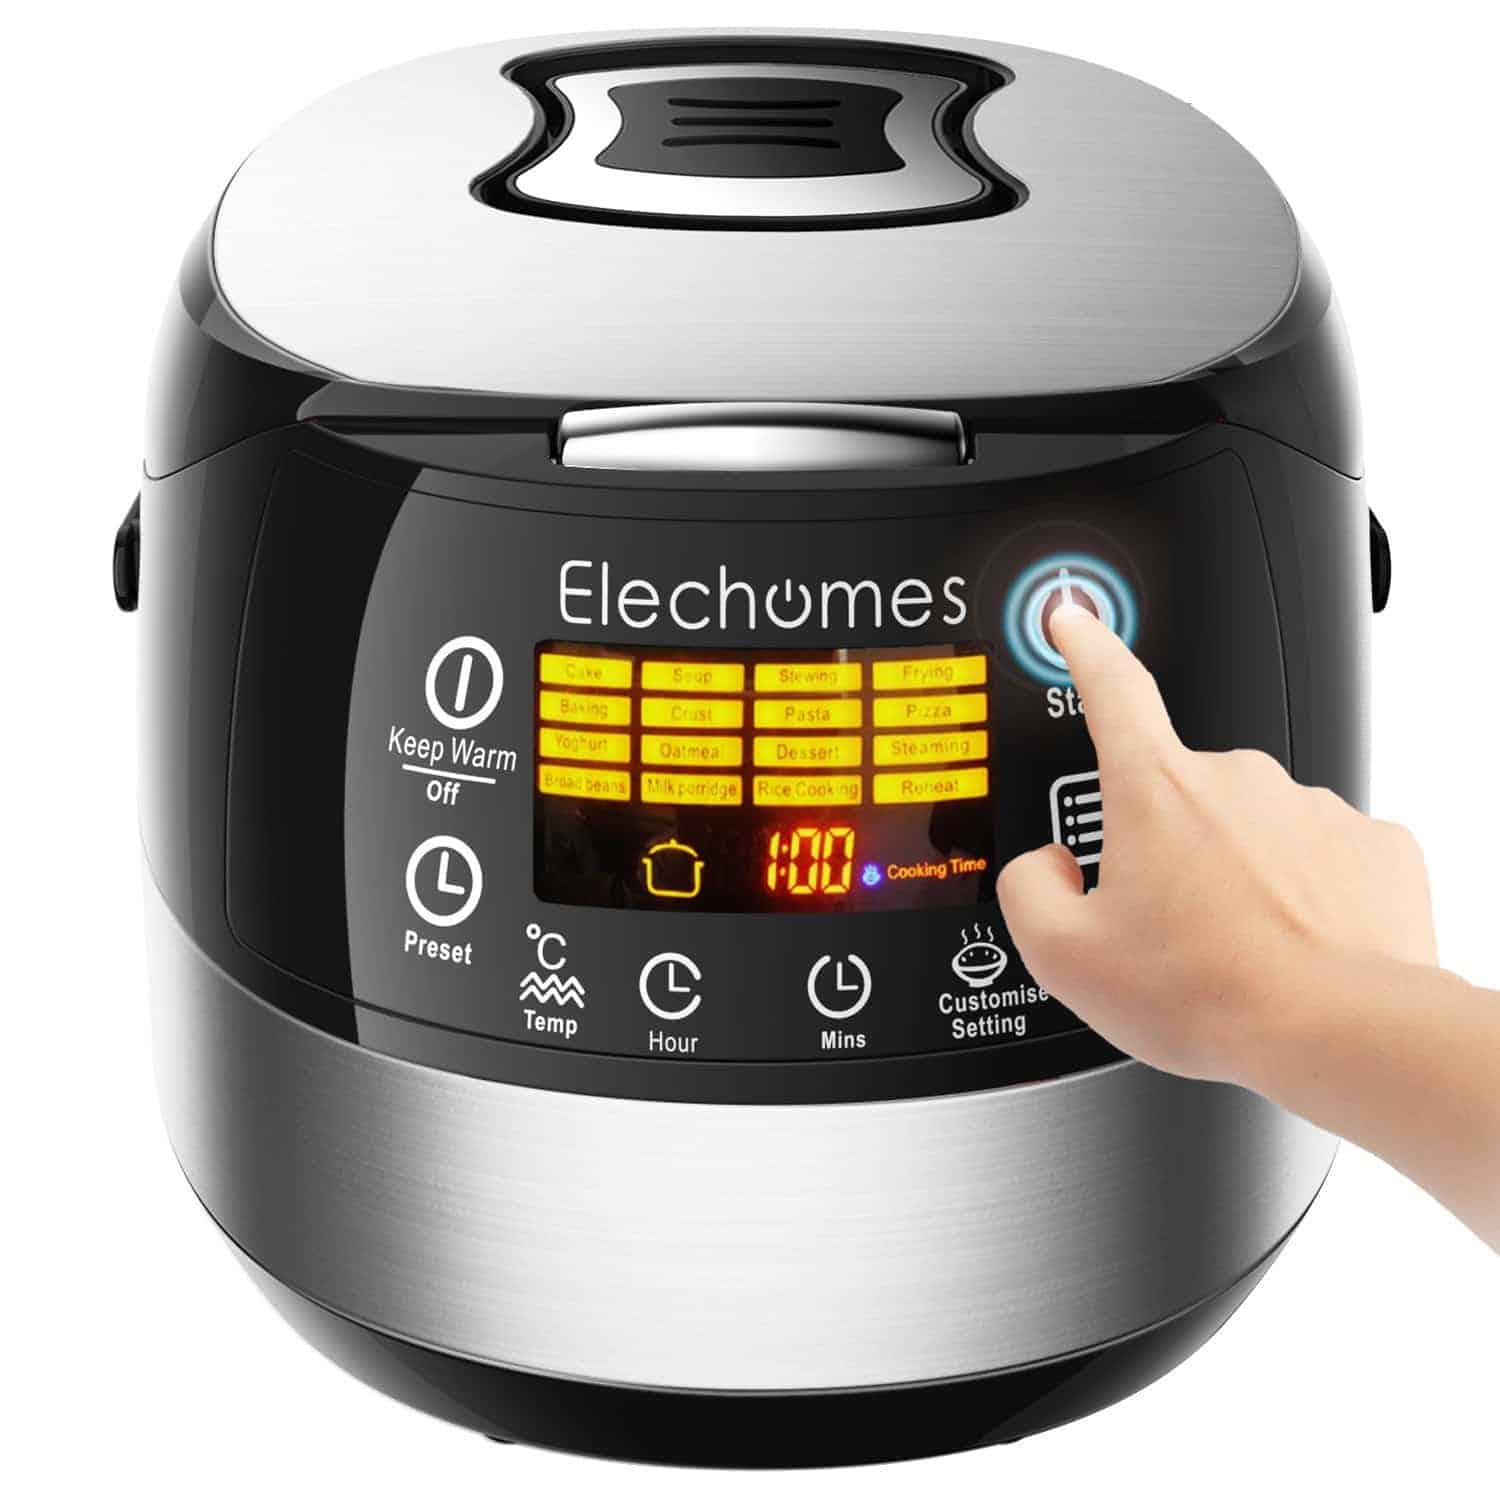 Sponsored Deals: Elechomes Rice Cooker, Dr. Meter's Products